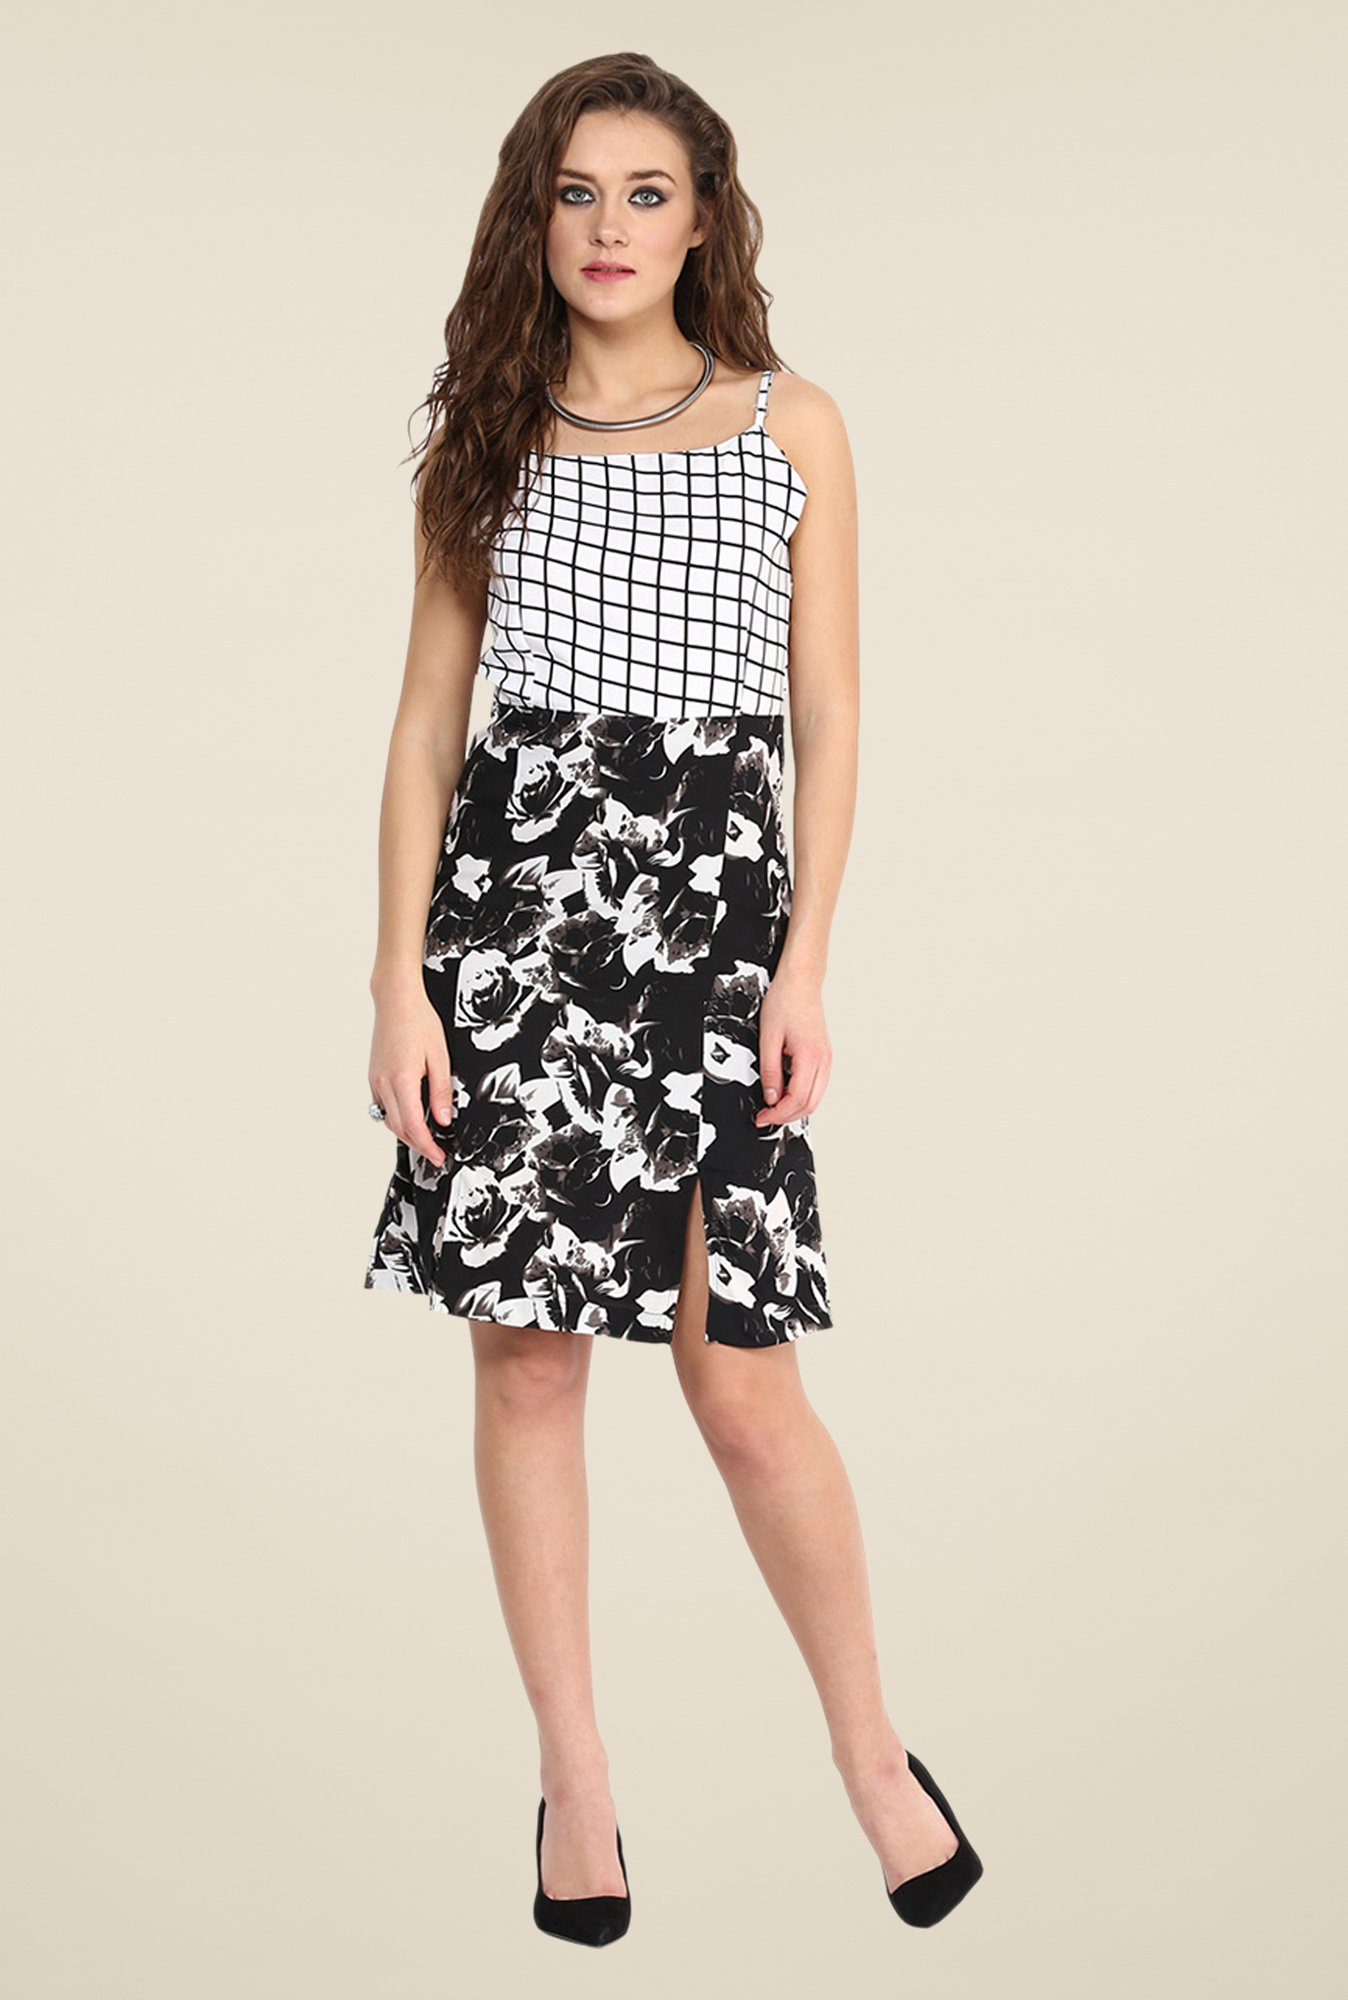 Yepme Black & White Flavia Slip Floral Print Dress